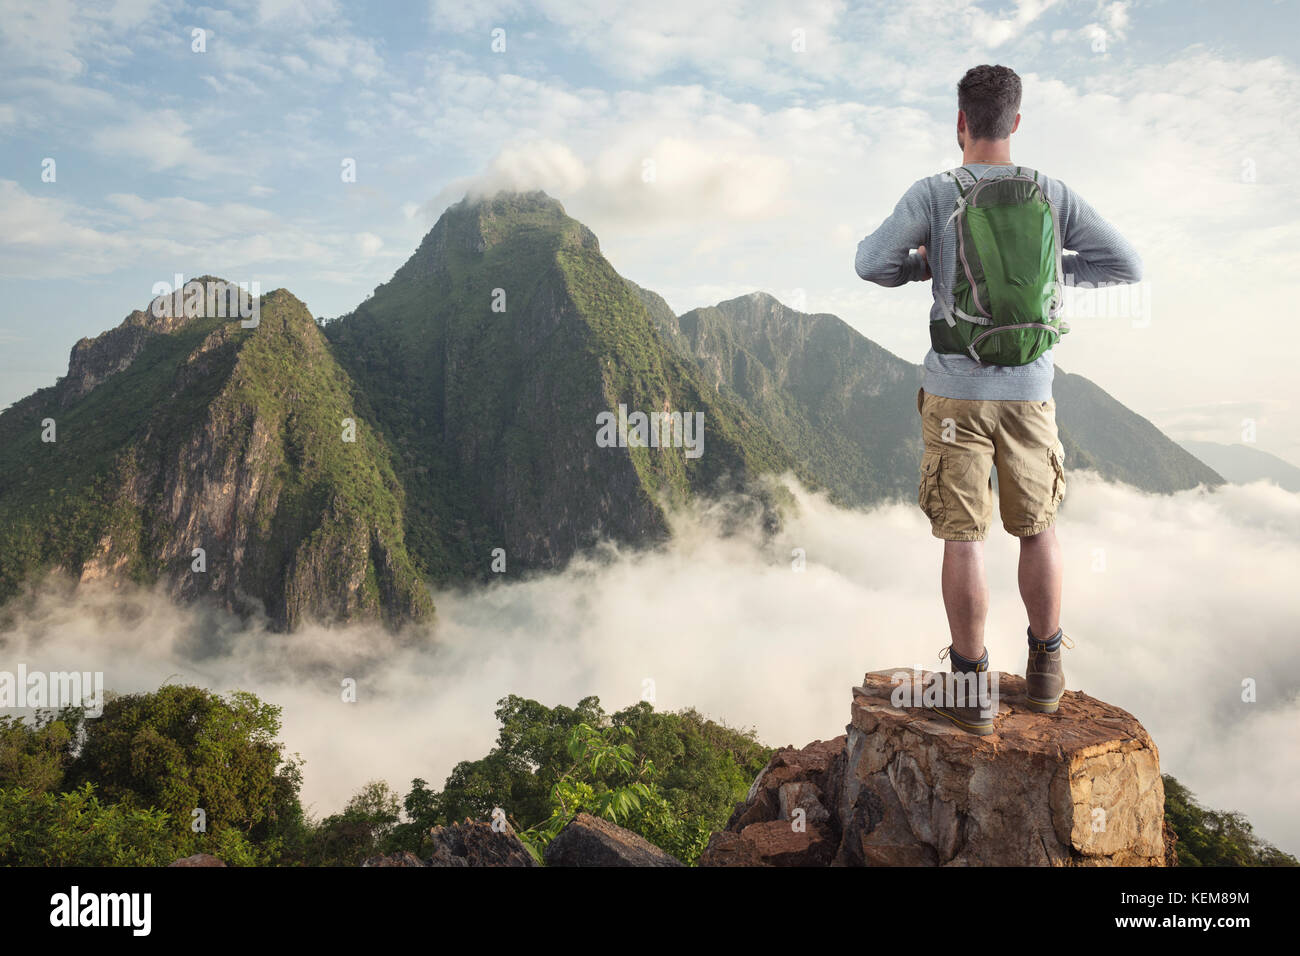 Hiker in front of a tropical mountain panorama - Stock Image